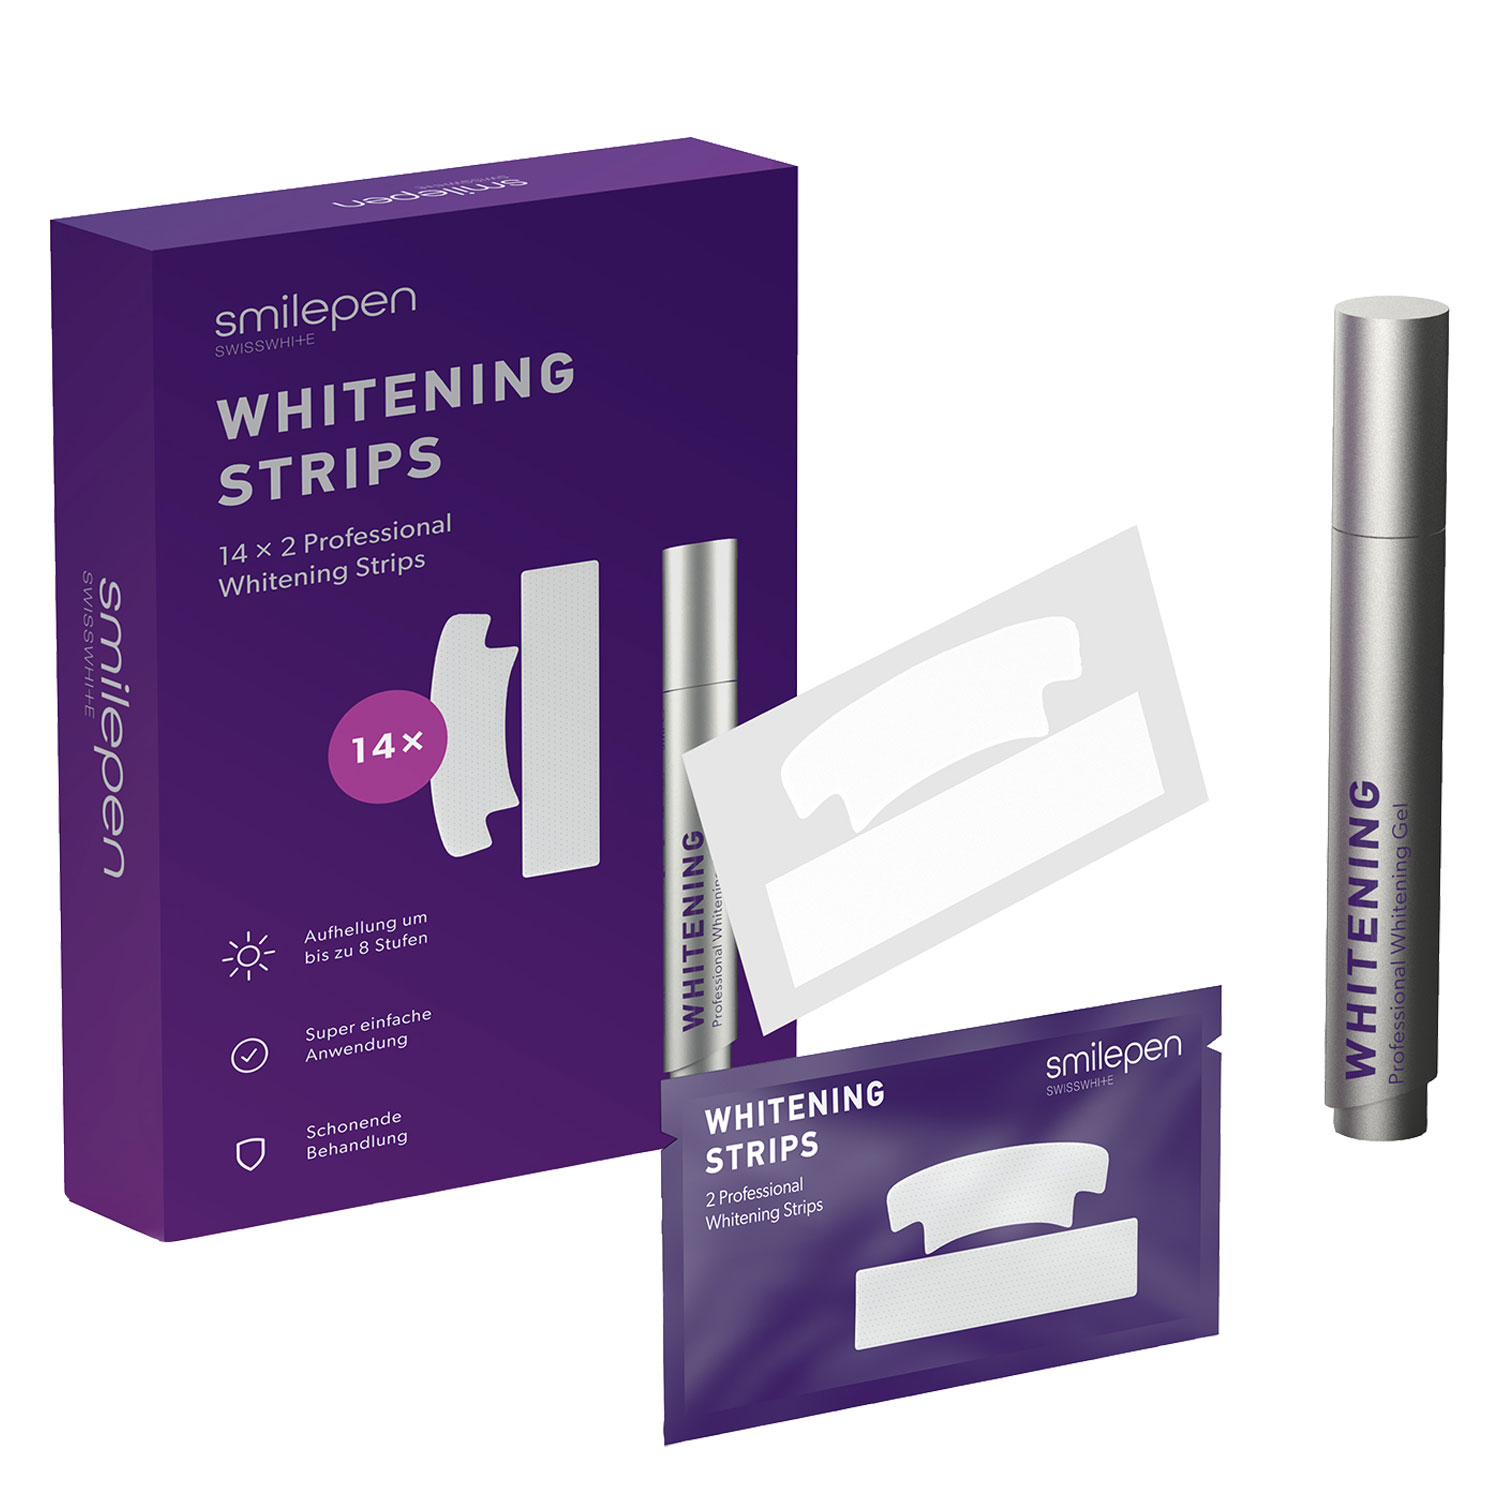 smilepen - Whitening Strips